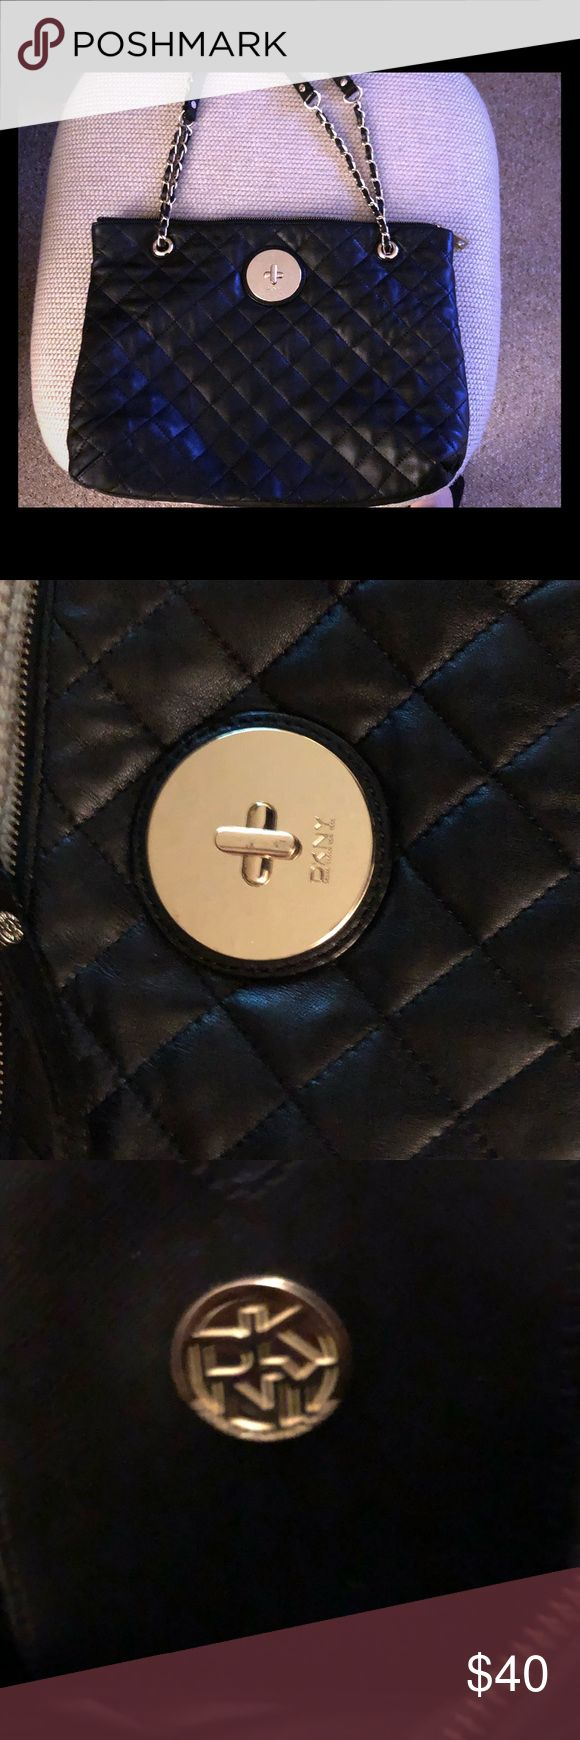 DKNY Handbag DKNY Black quilted leather bag without gold chain.soft leather. Only worn a couple of times, slightly Scratched Dkny Bags